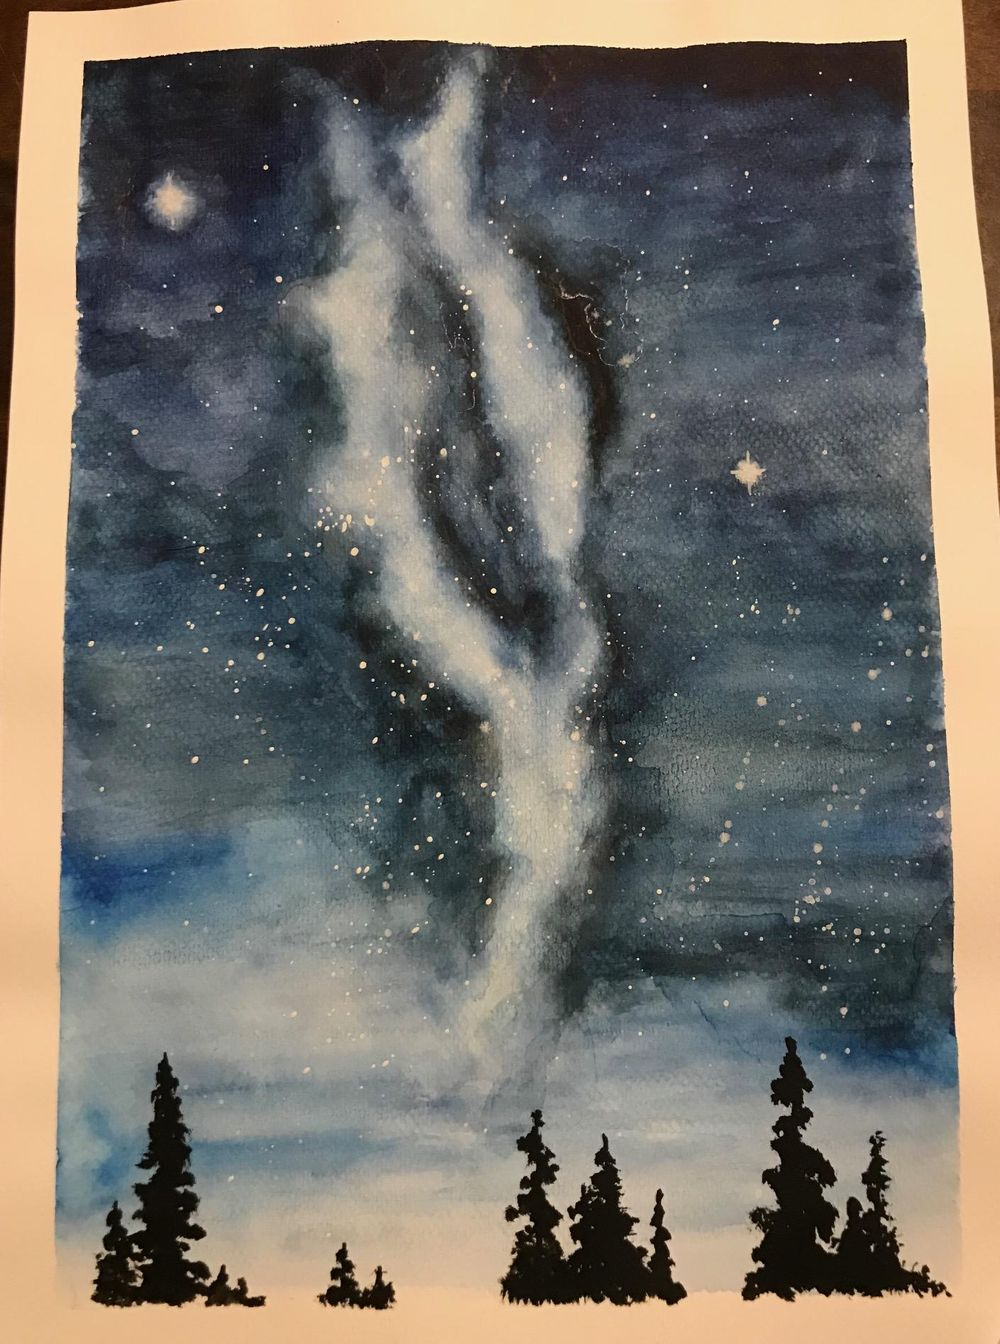 Learning to paint the Milky Way night sky - image 1 - student project